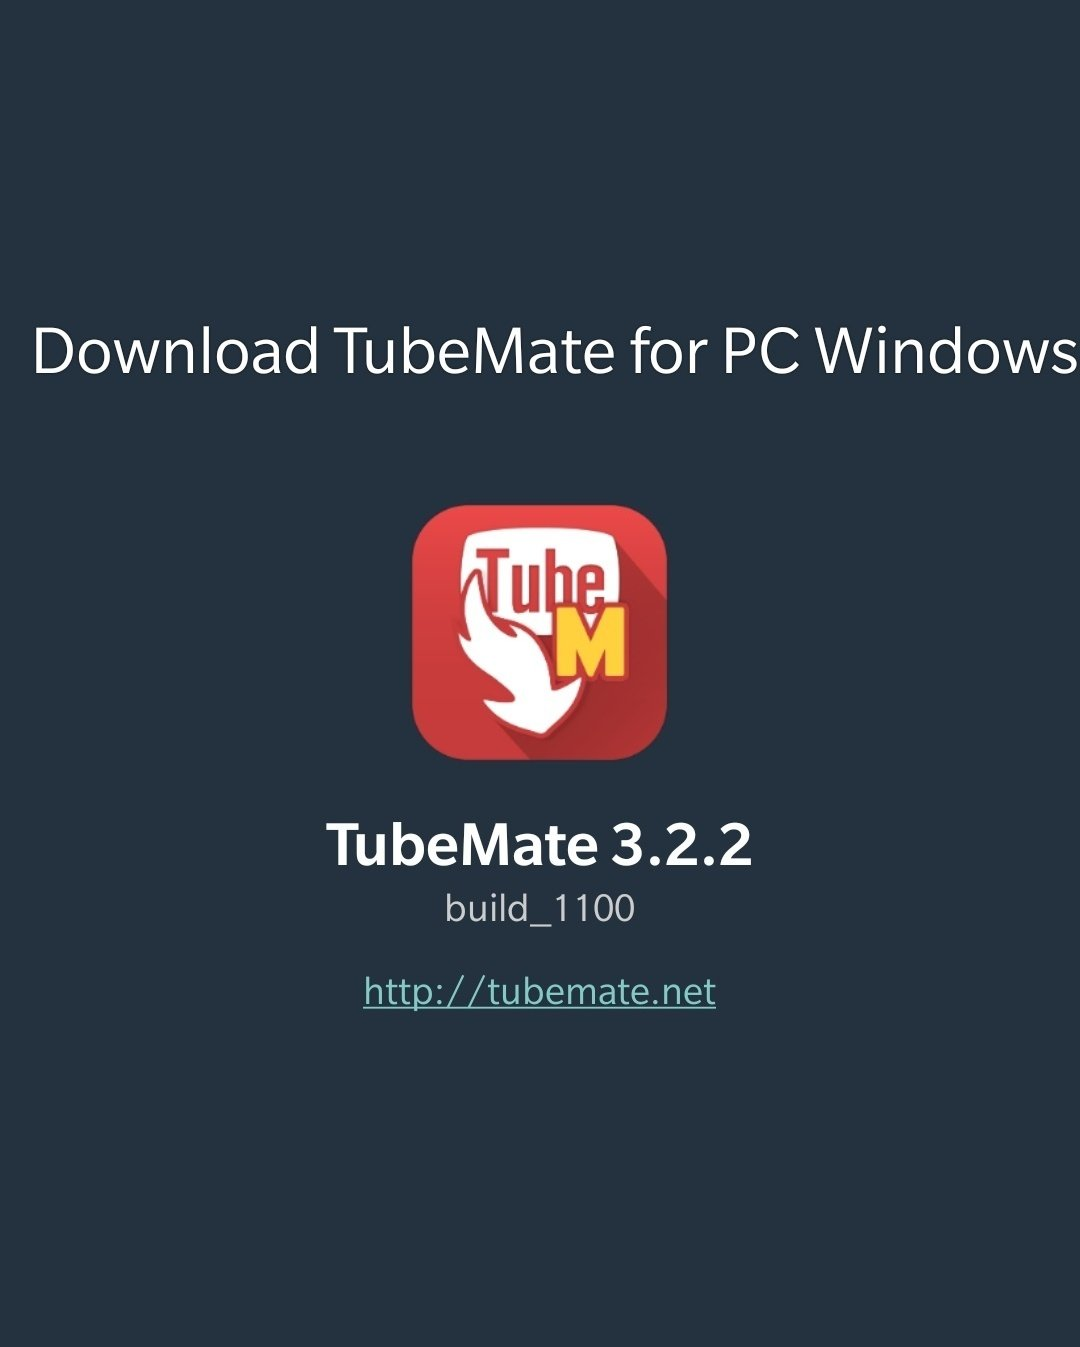 Download TubeMate for PC Windows 10/8/7/XP